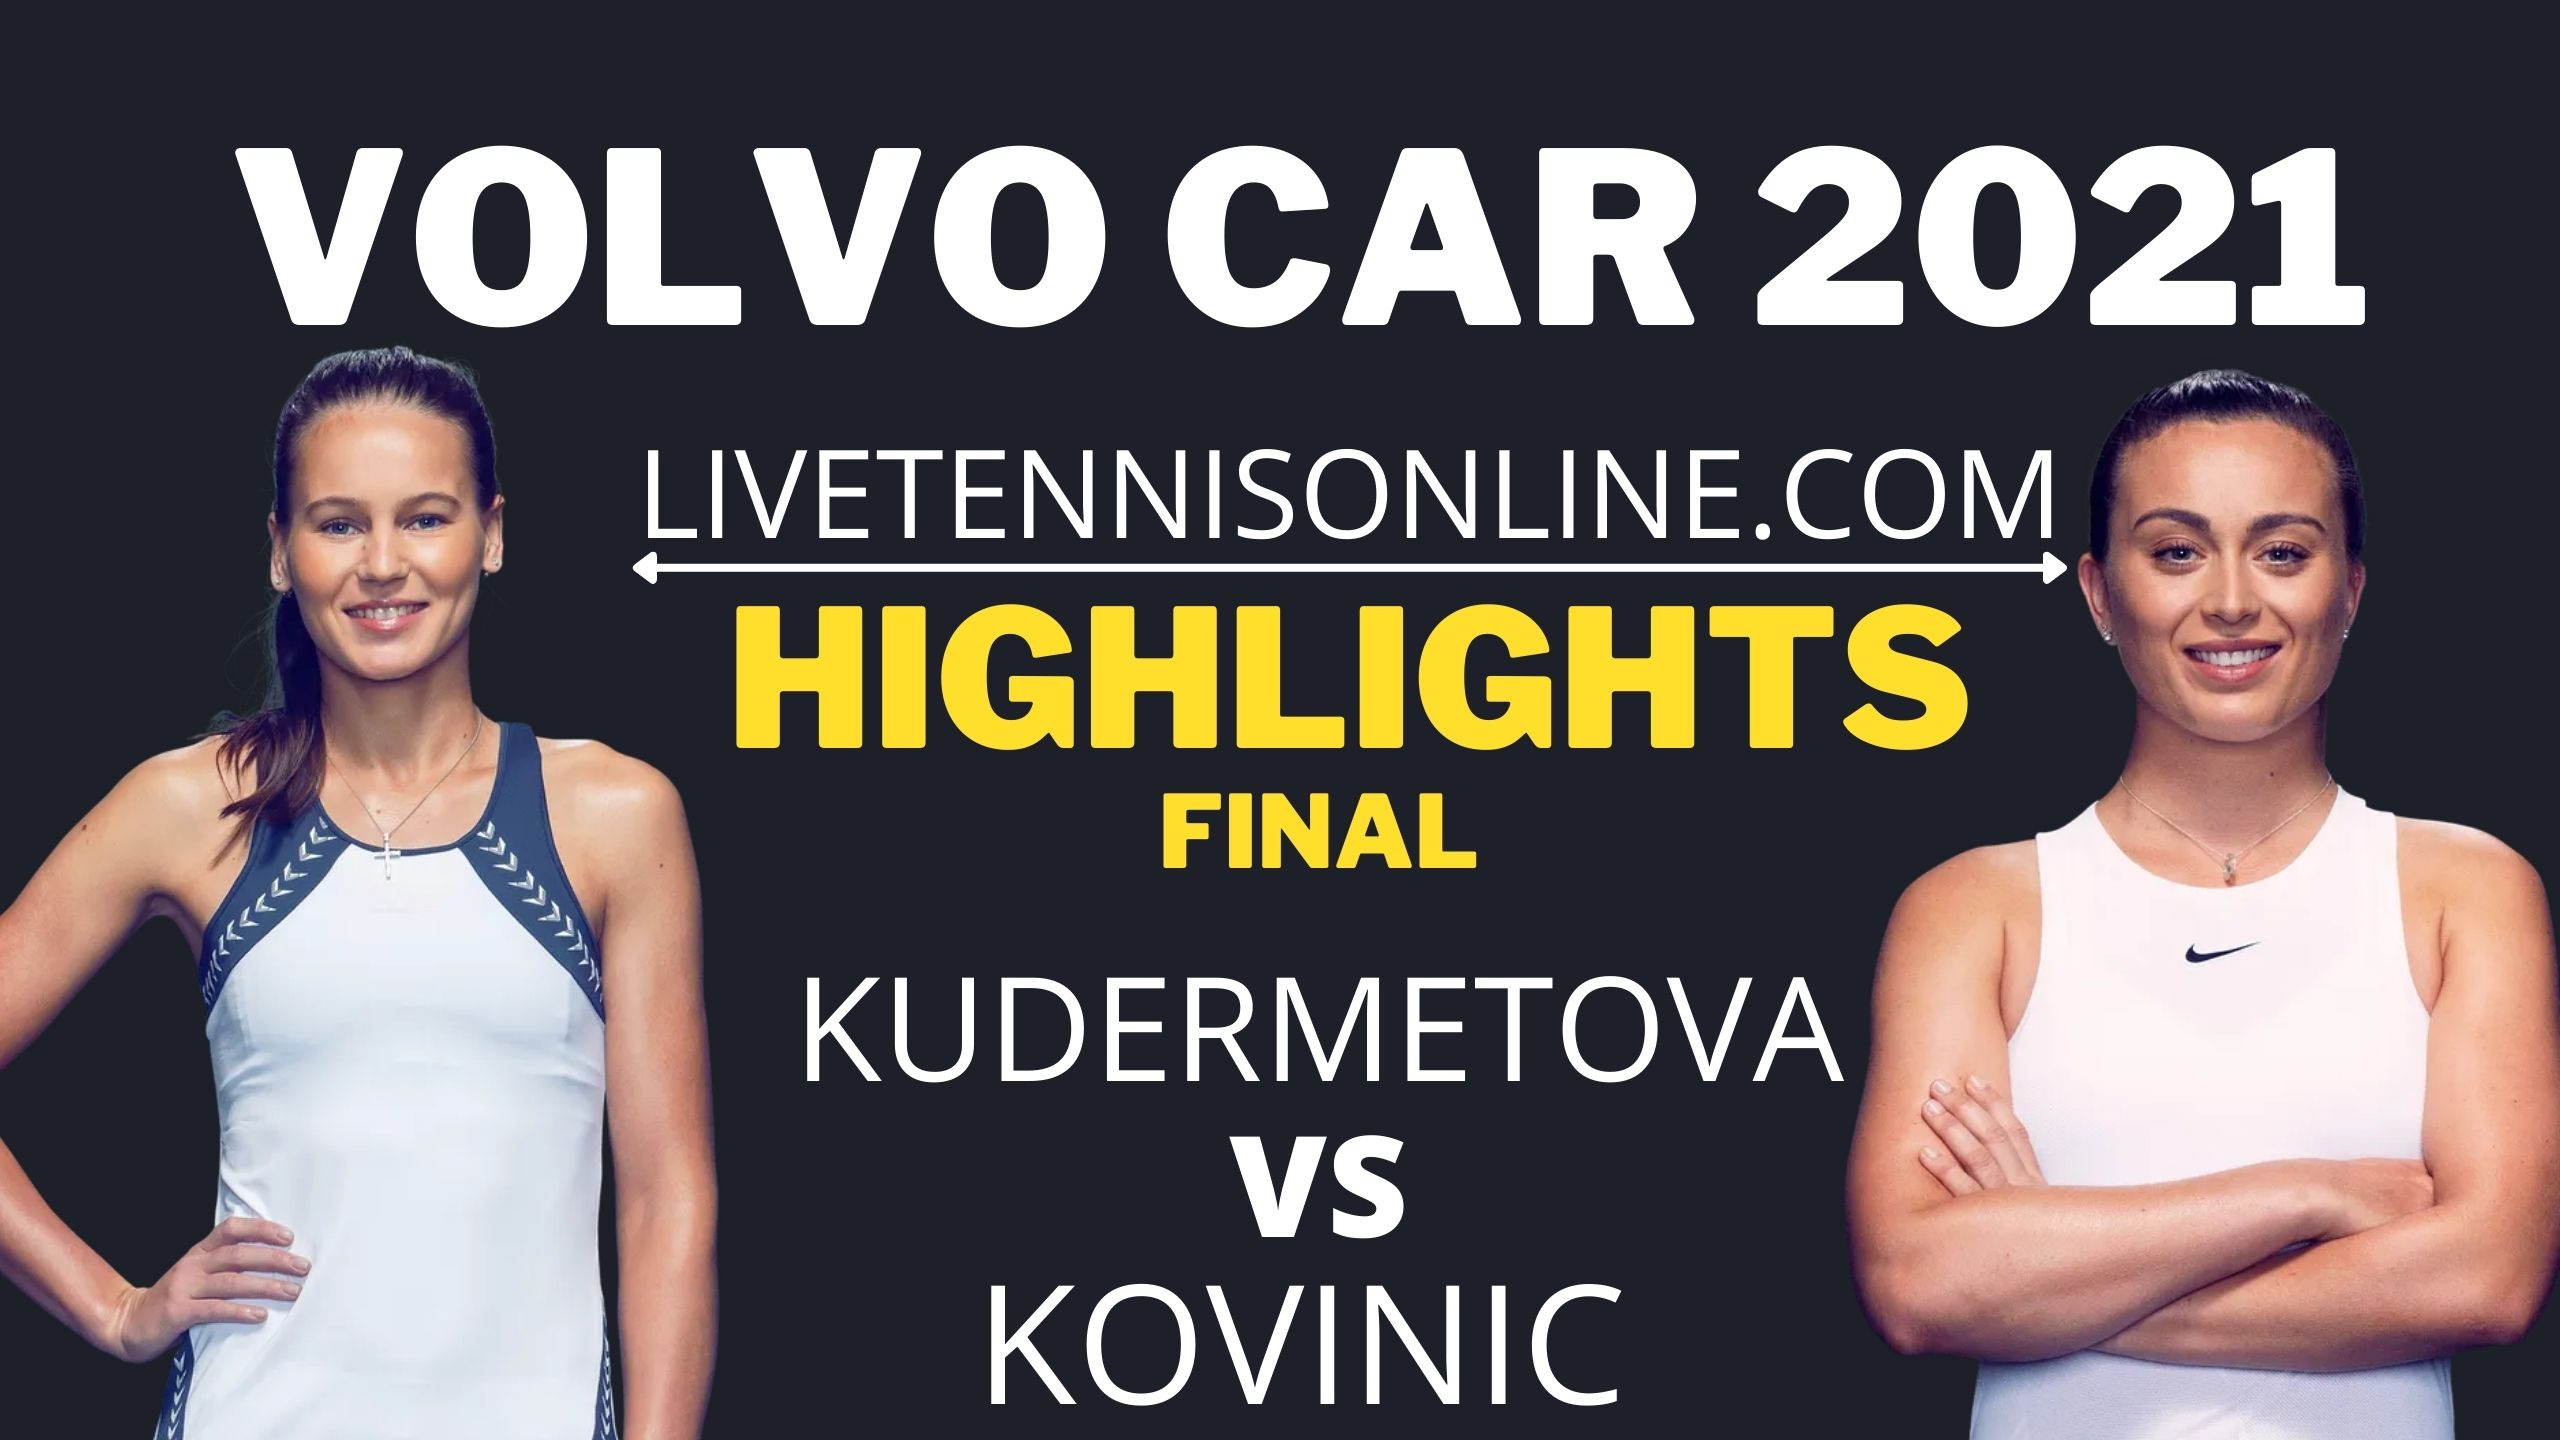 Kudermetova Vs  Kovinic Final Highlights 2021